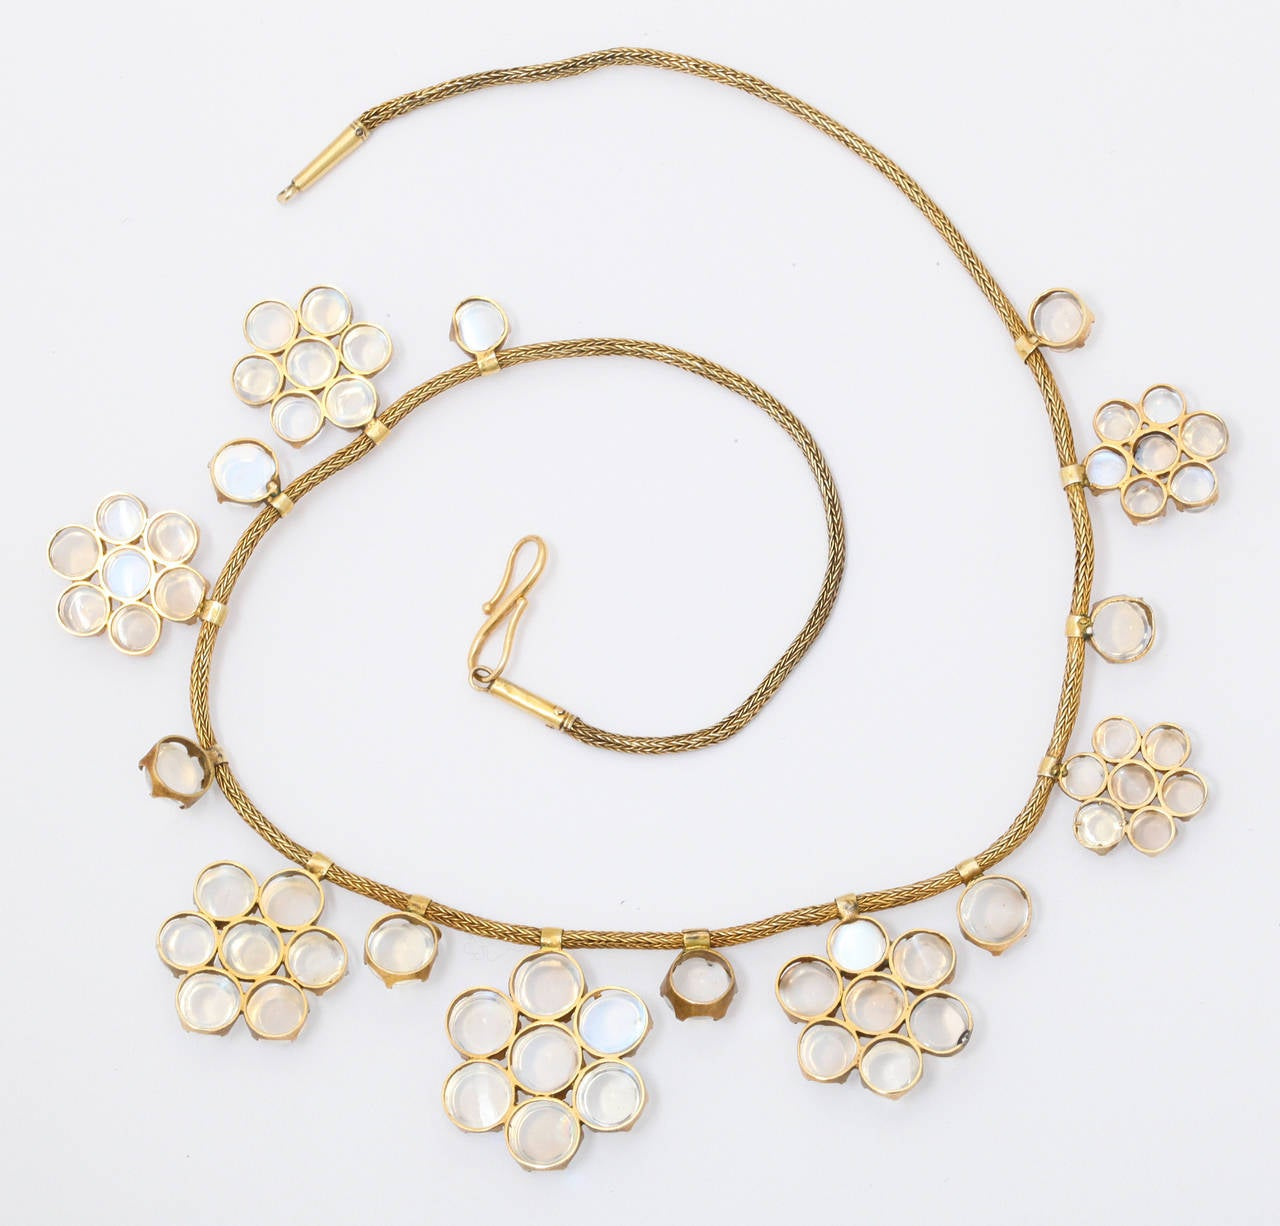 Antique Moonstone Gold Necklace 5